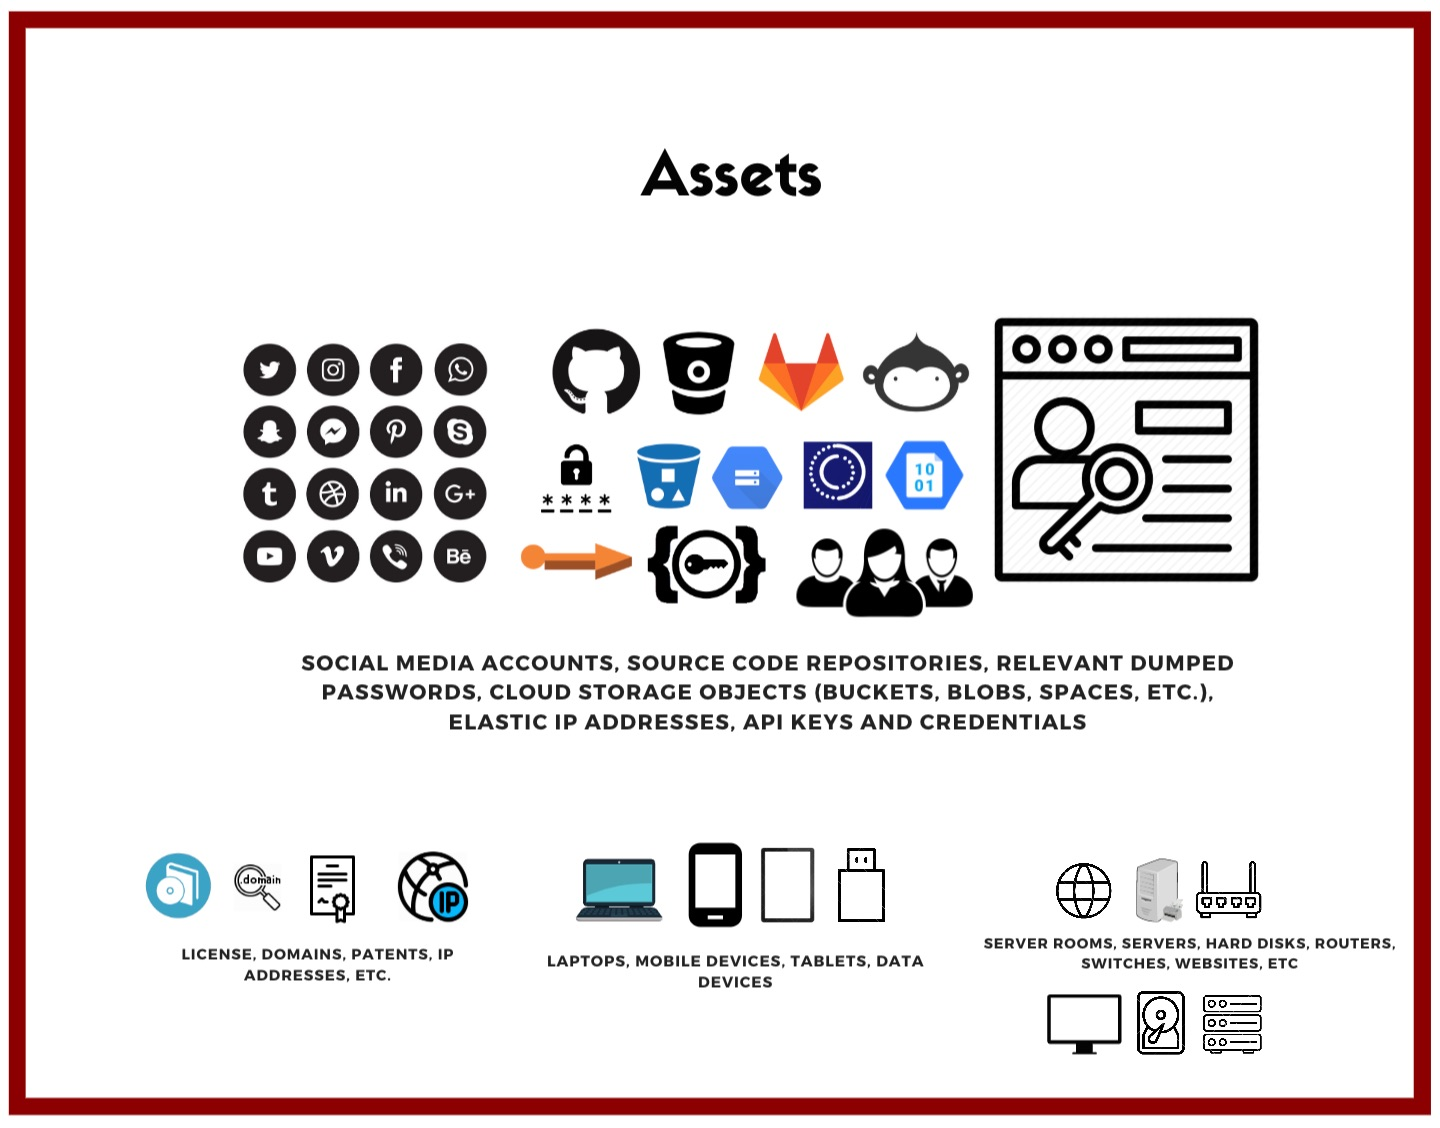 Redefining Assets – A Modern Perspective